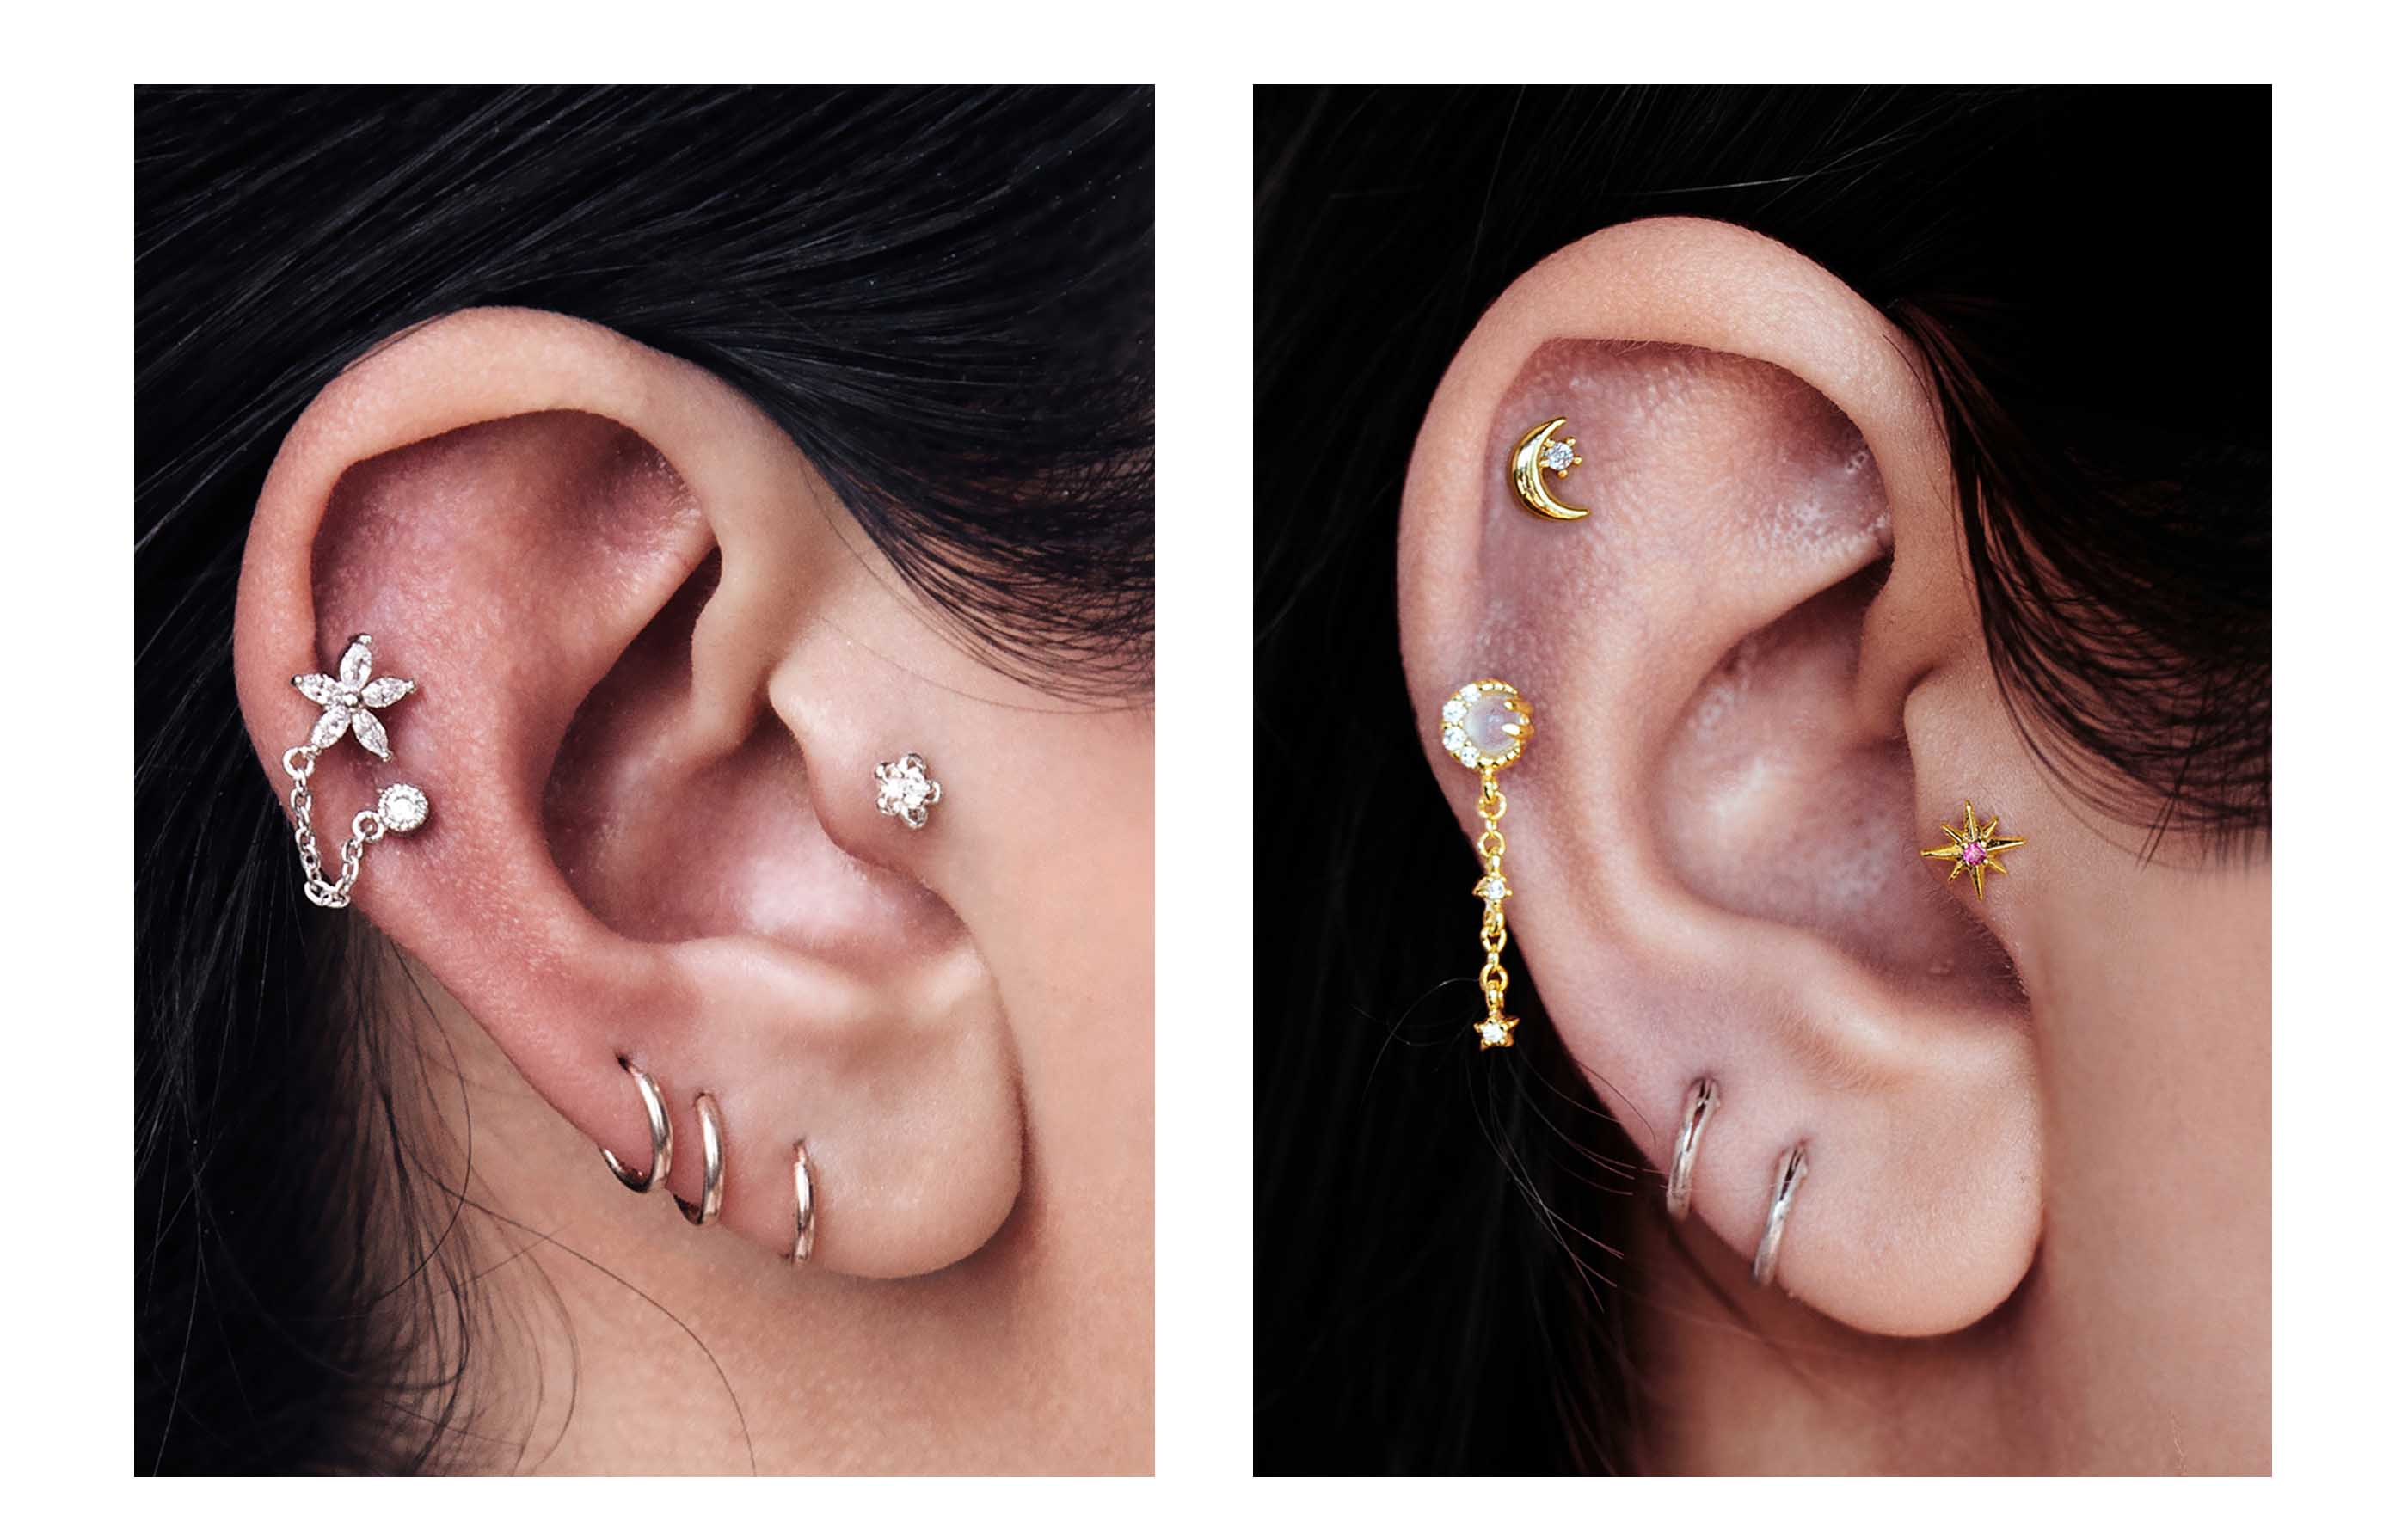 Helix Piercing Inspirations 1